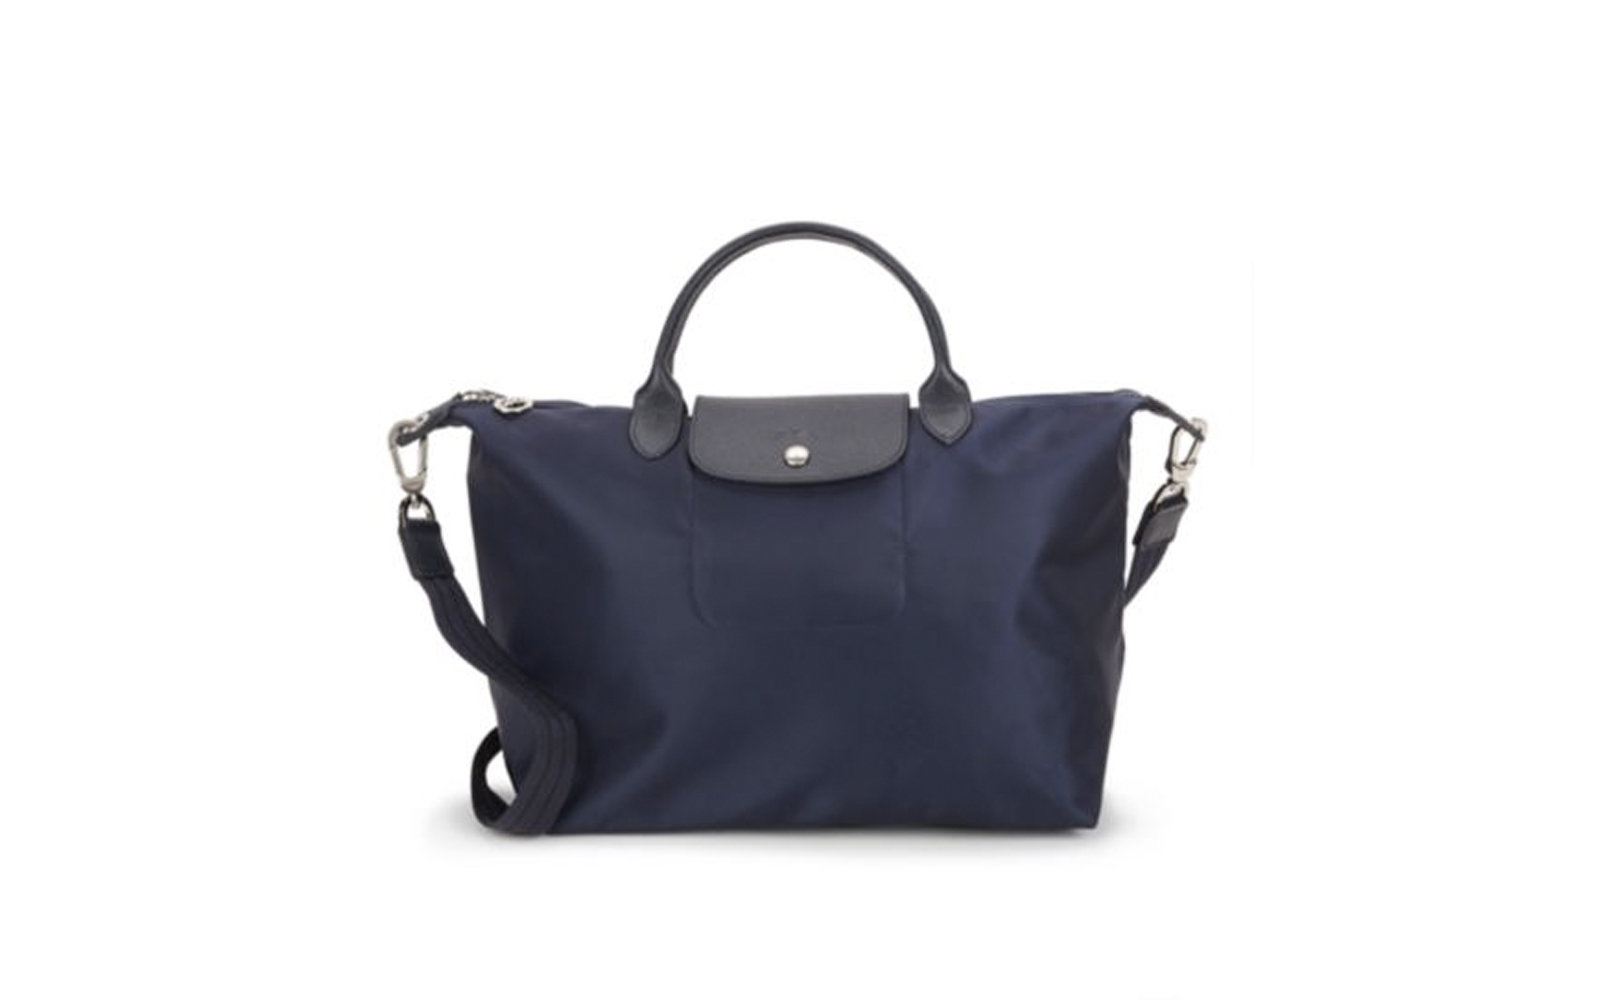 Longchamp Le Pliage Tote Bag In Navy